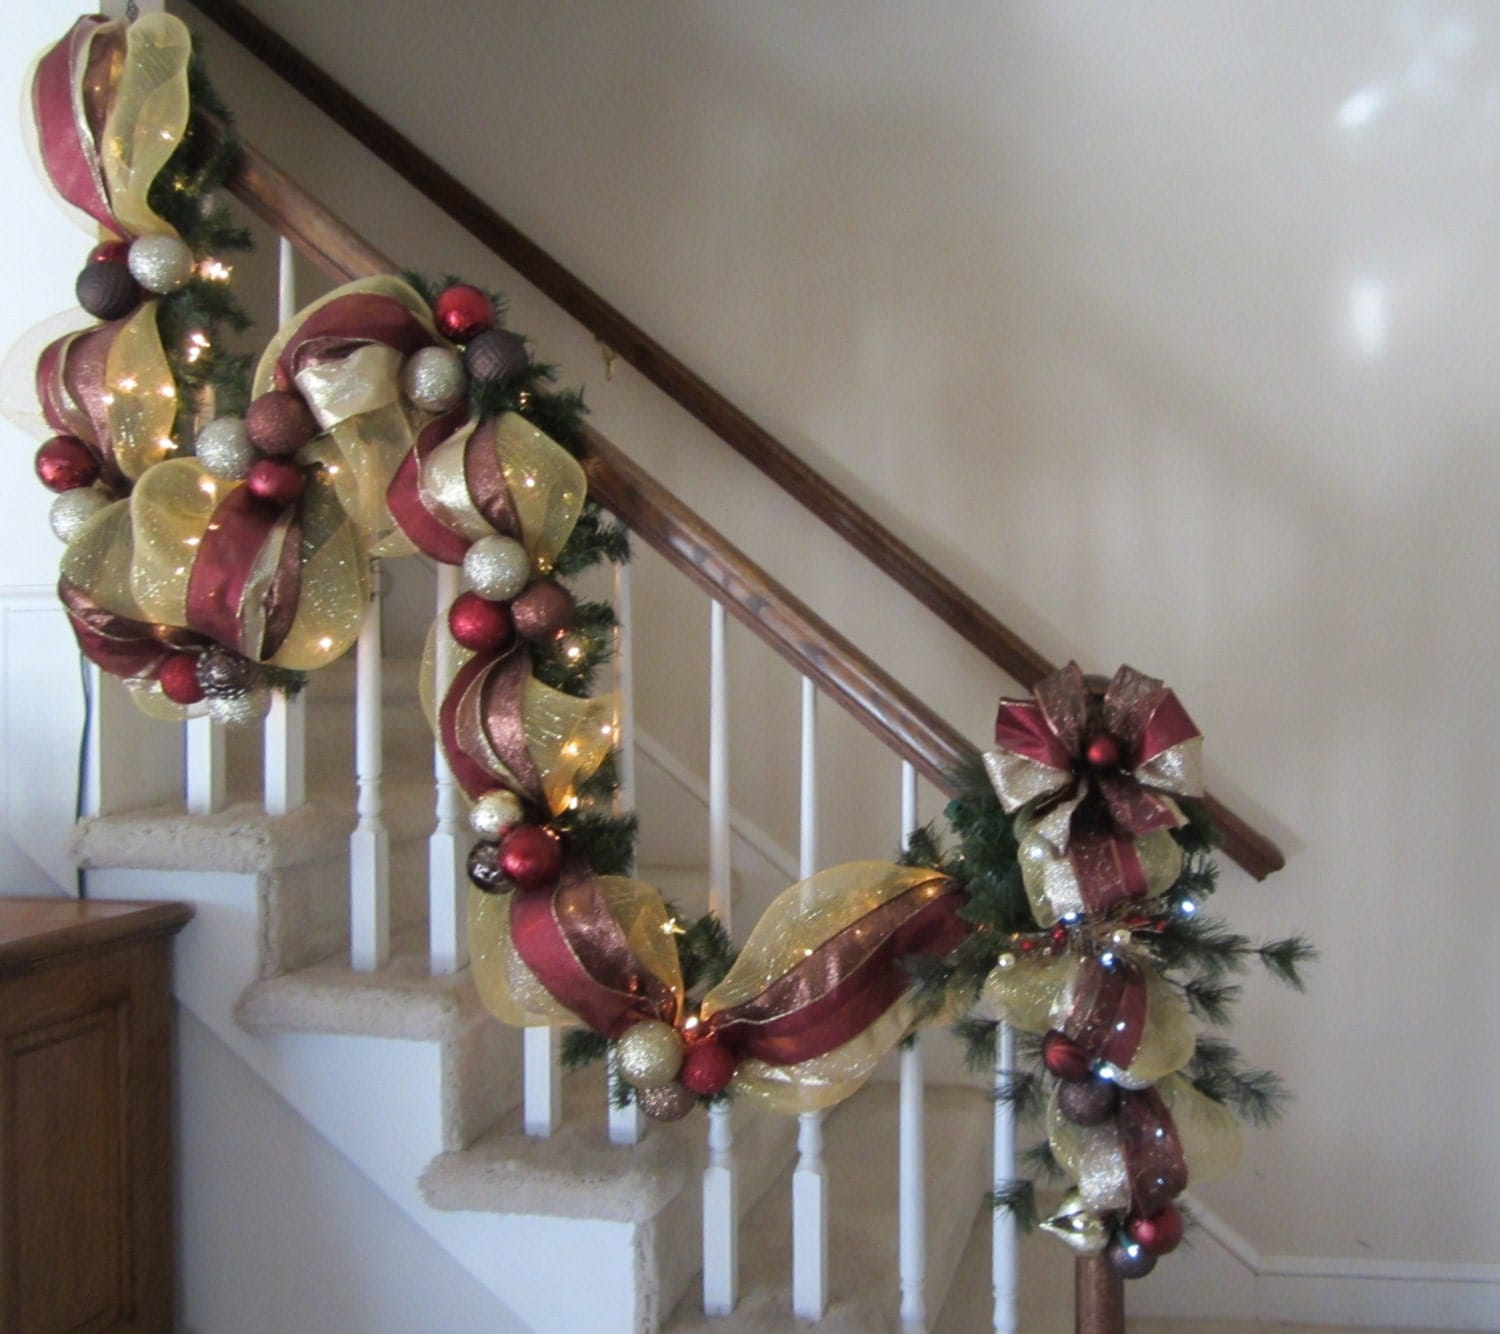 Christmas Garland Swag Set, Wreath, Old World, Pine, Mesh, Stair Case, Mantel Garland, Wall, Door, Lights, Holiday Decor